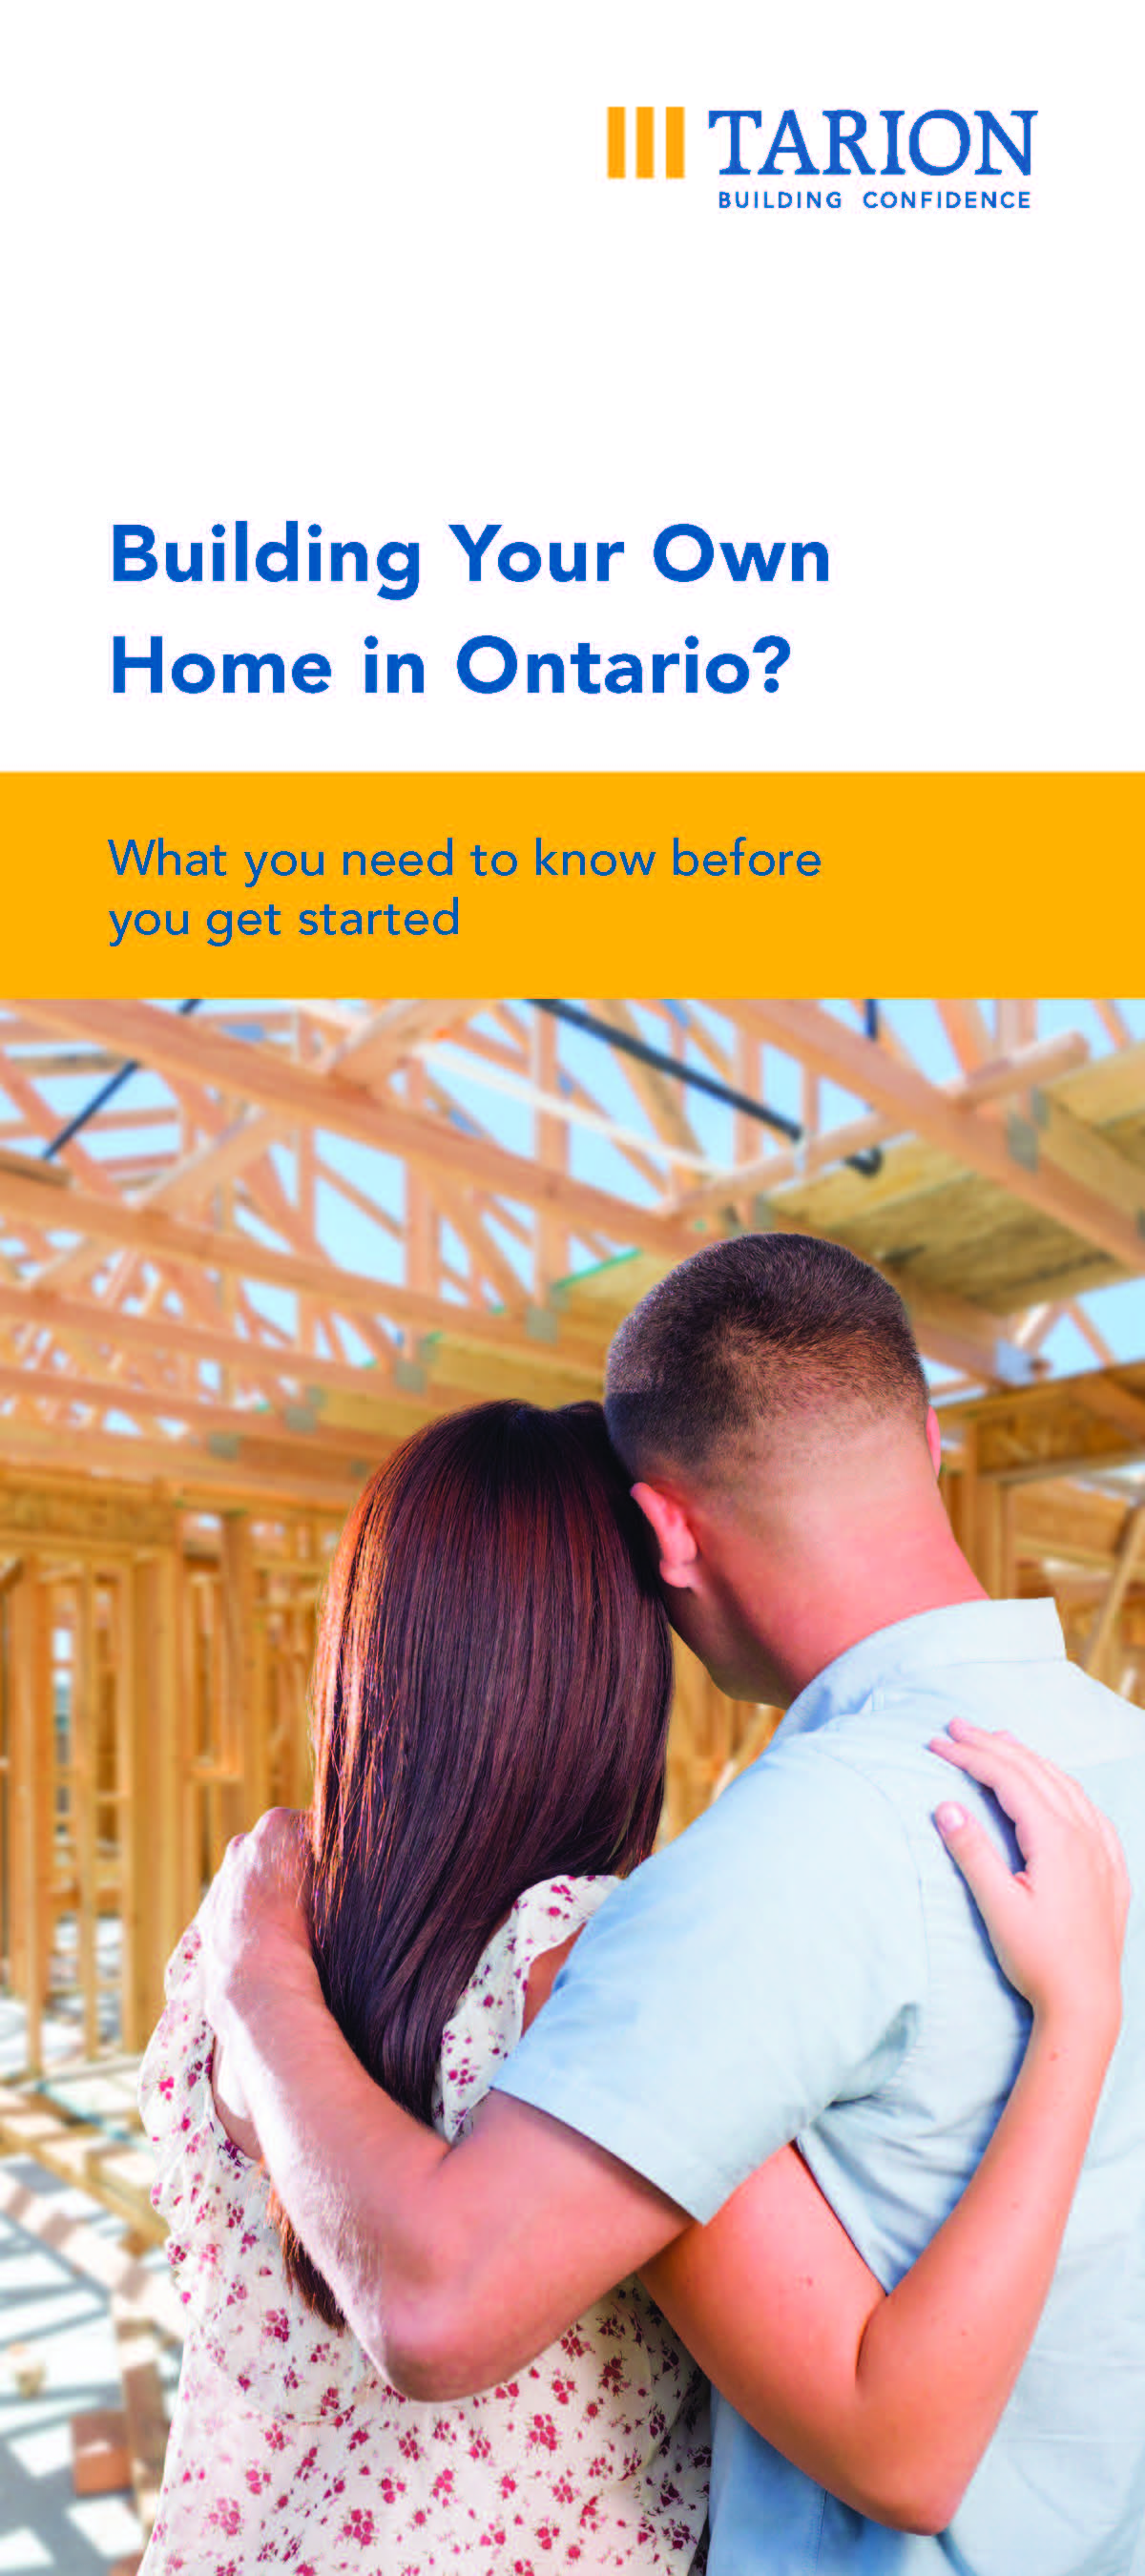 Building Your Own Home - Brochure Cover